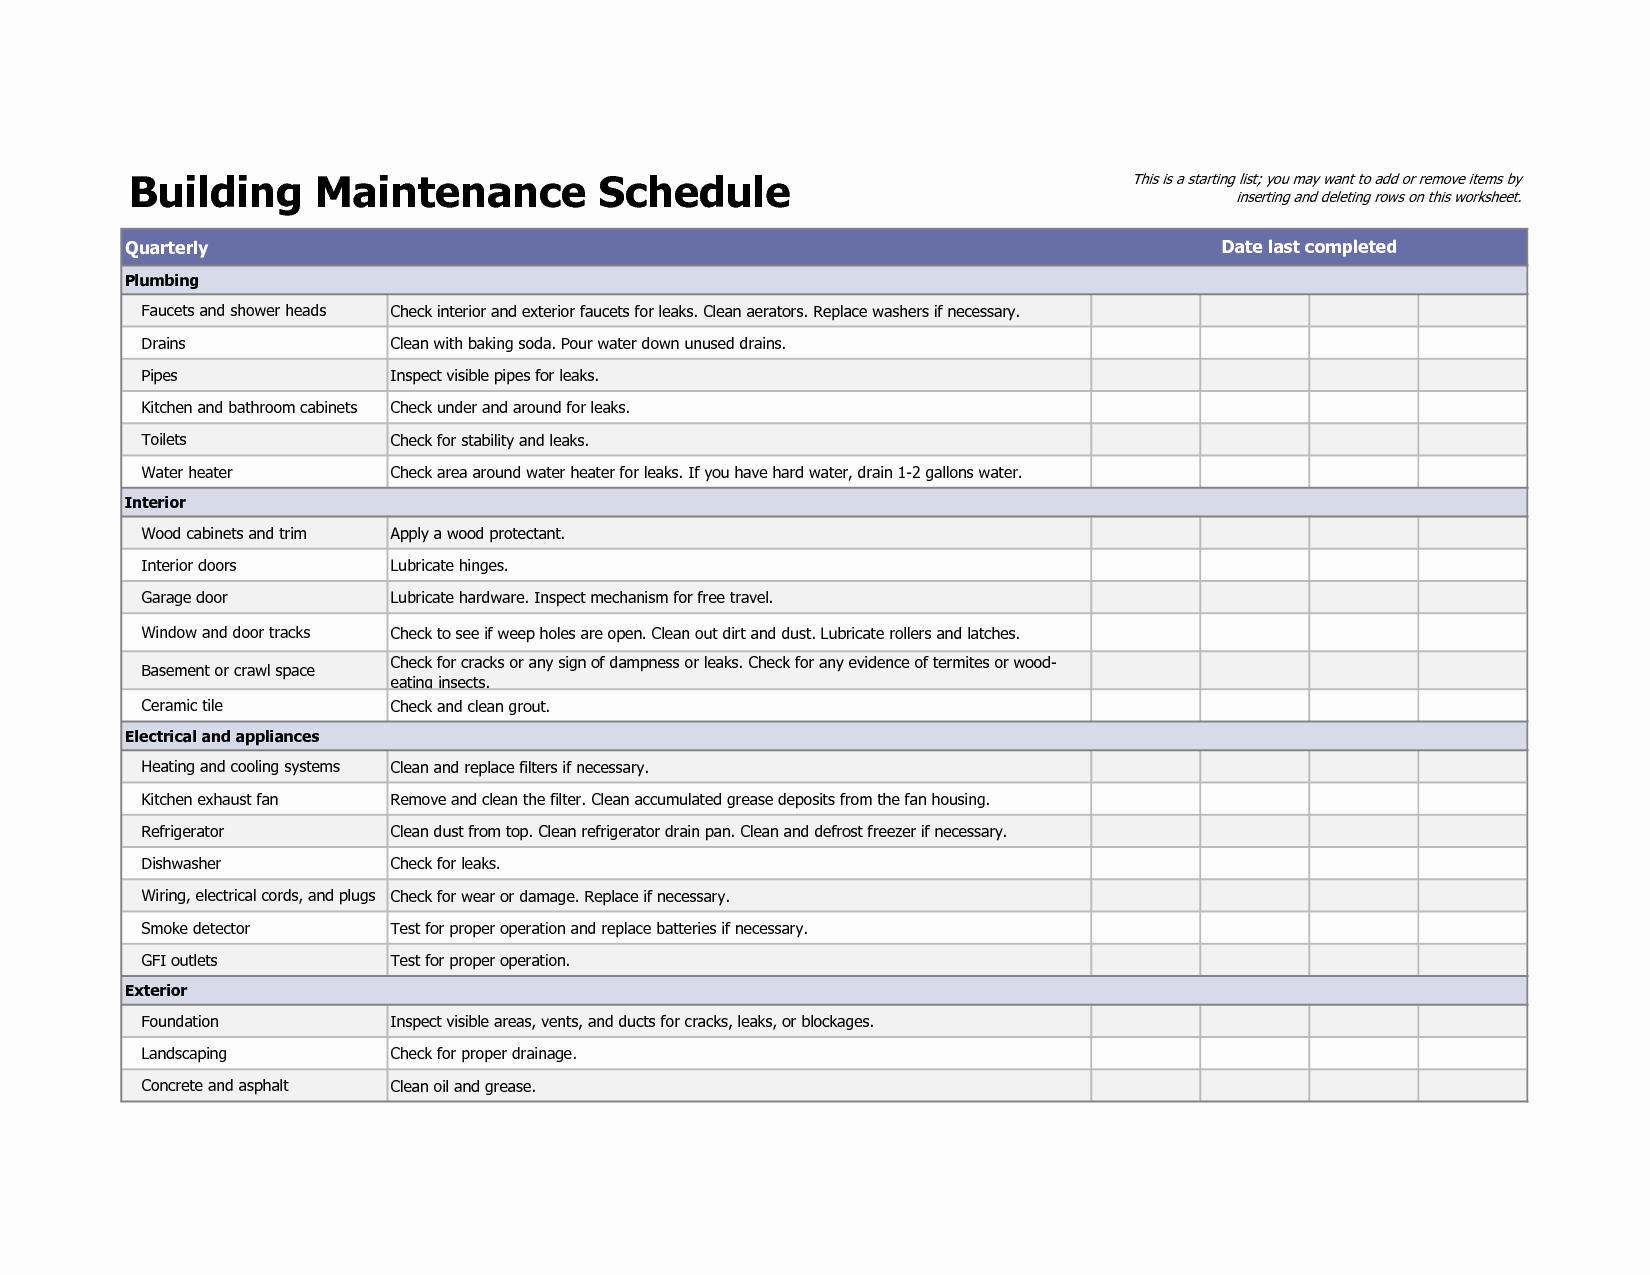 Preventive Maintenance Schedule Template Best Of Building Maintenance Schedule Excel Template